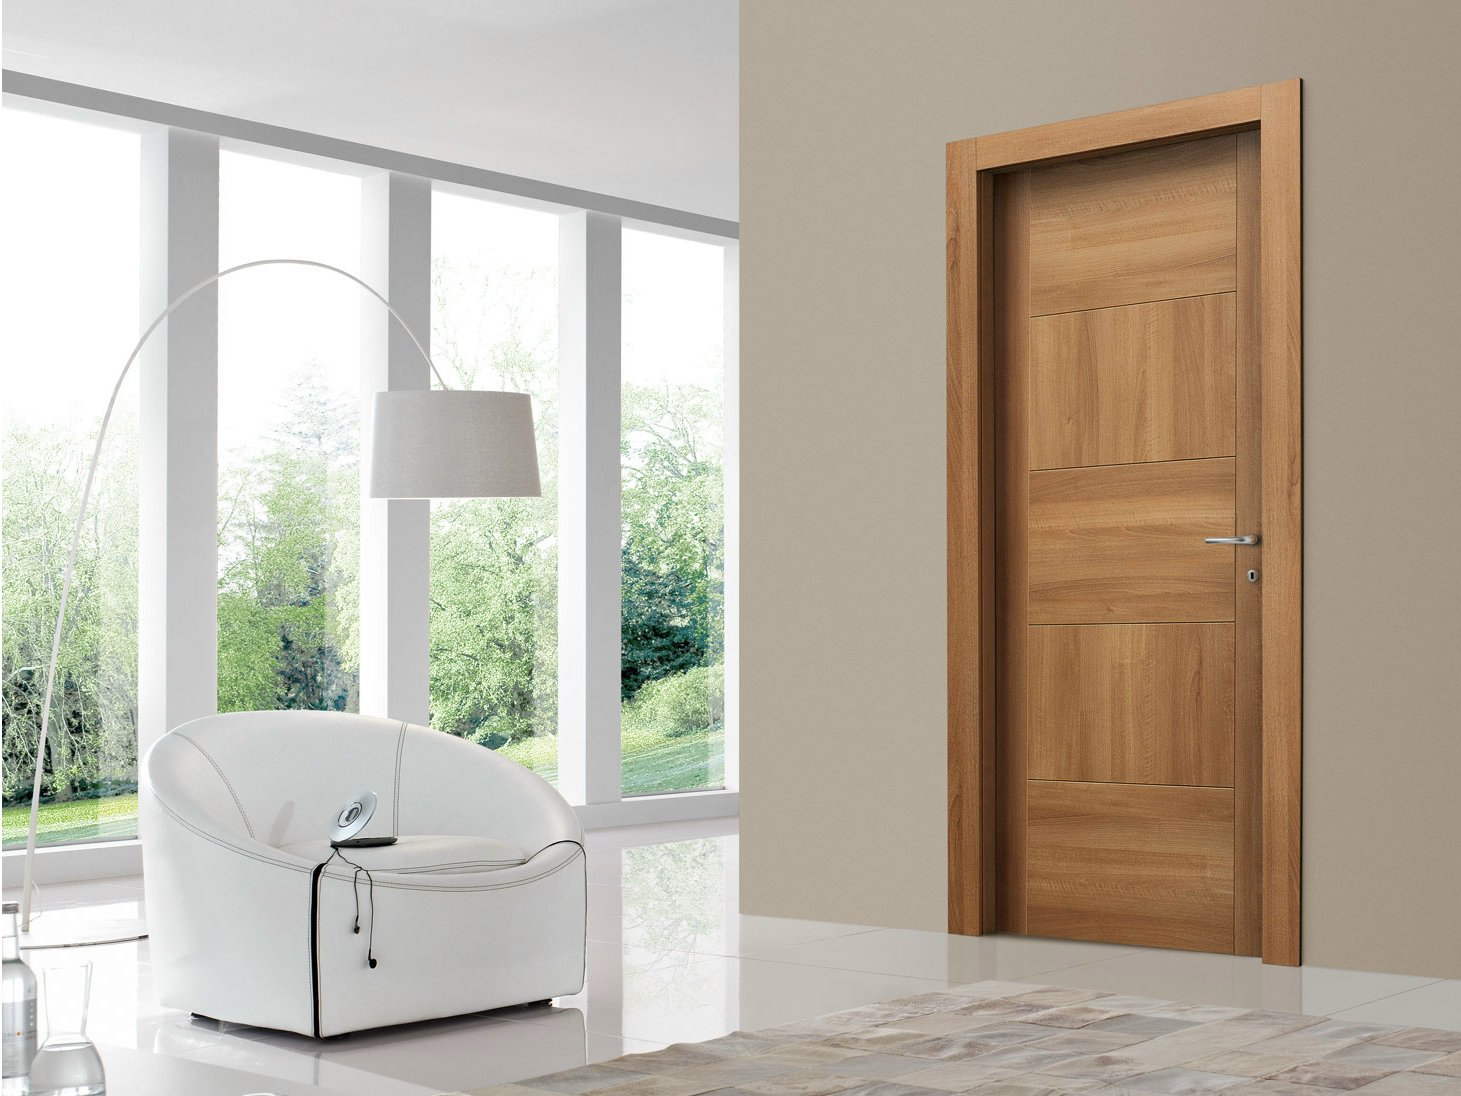 Porta a battente in noce square collezione planet by door for Gruppo door 2000 spa